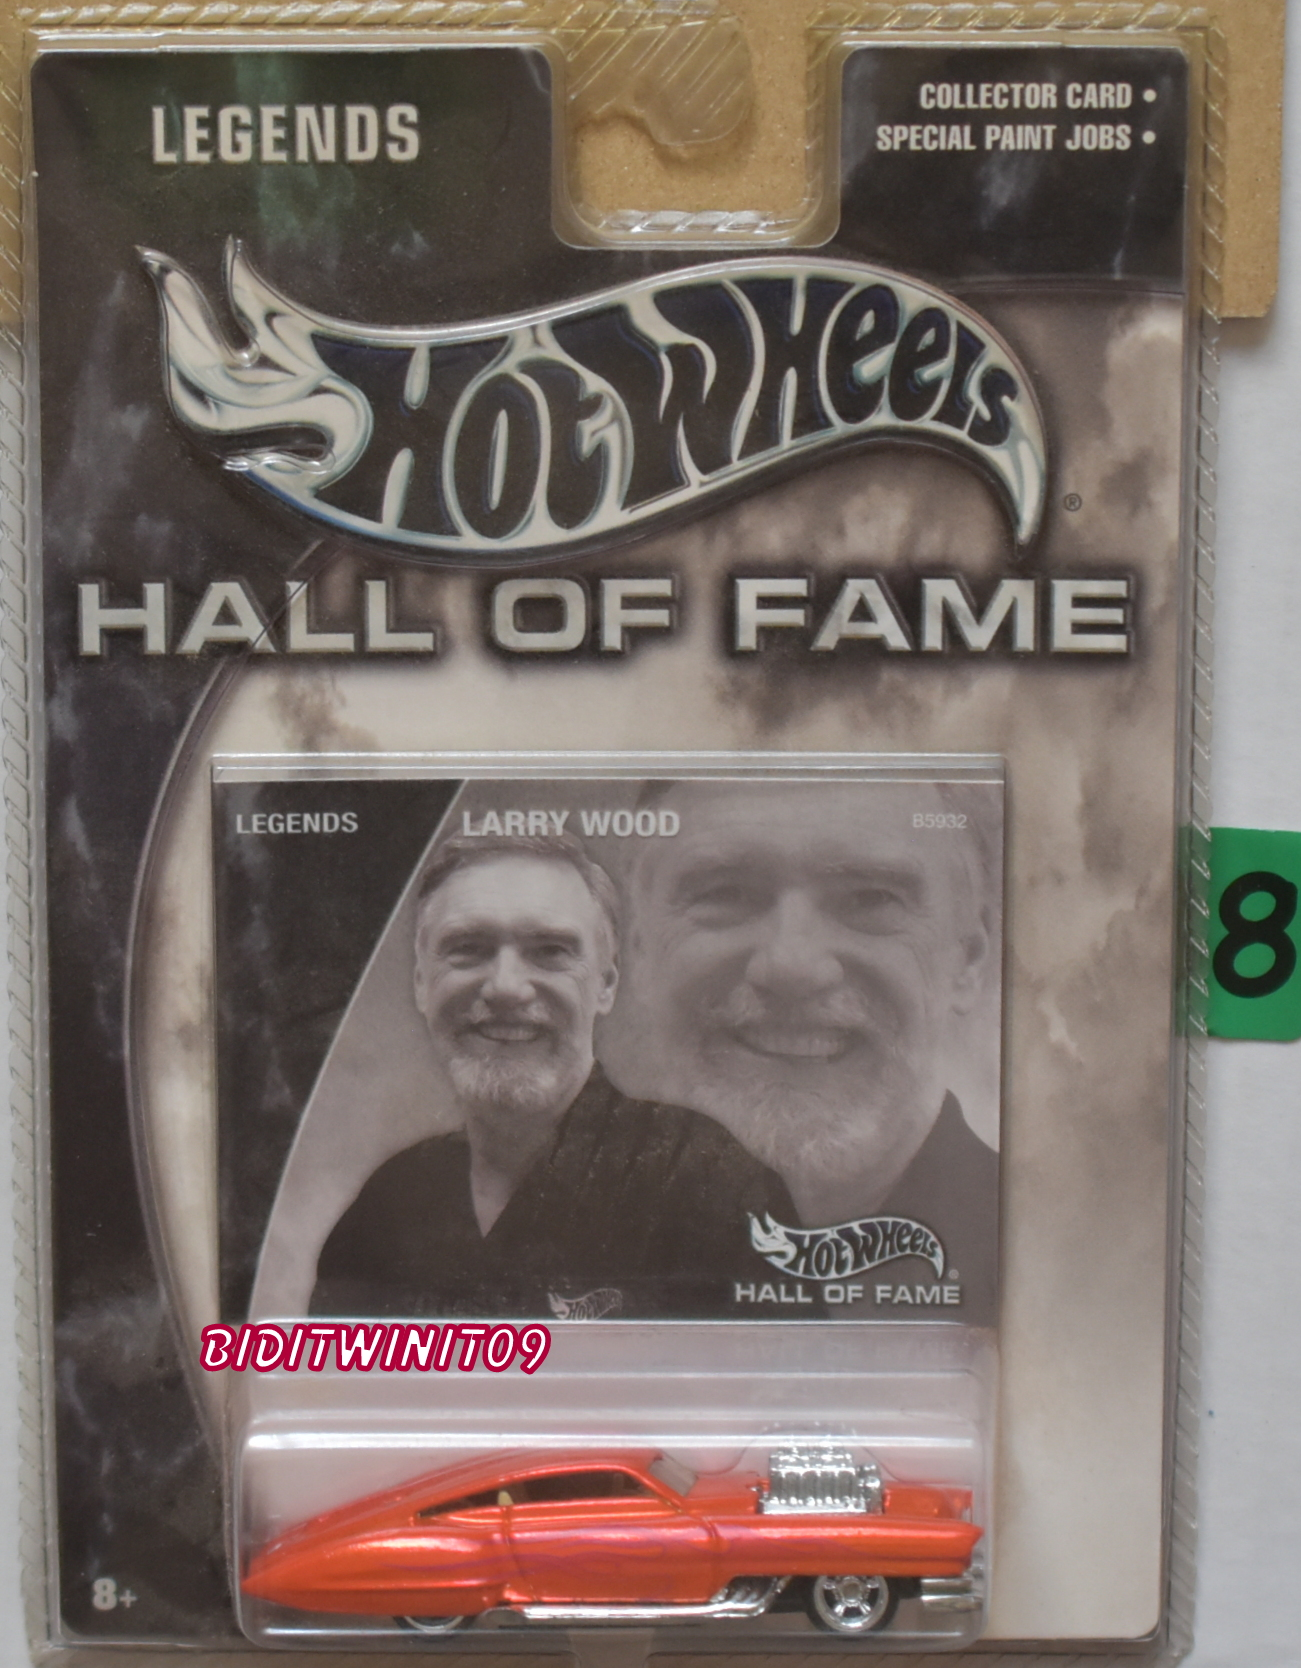 HOT WHEELS HALL OF FAME LEGENDS LARRY WOOD EVIL TWIN E+